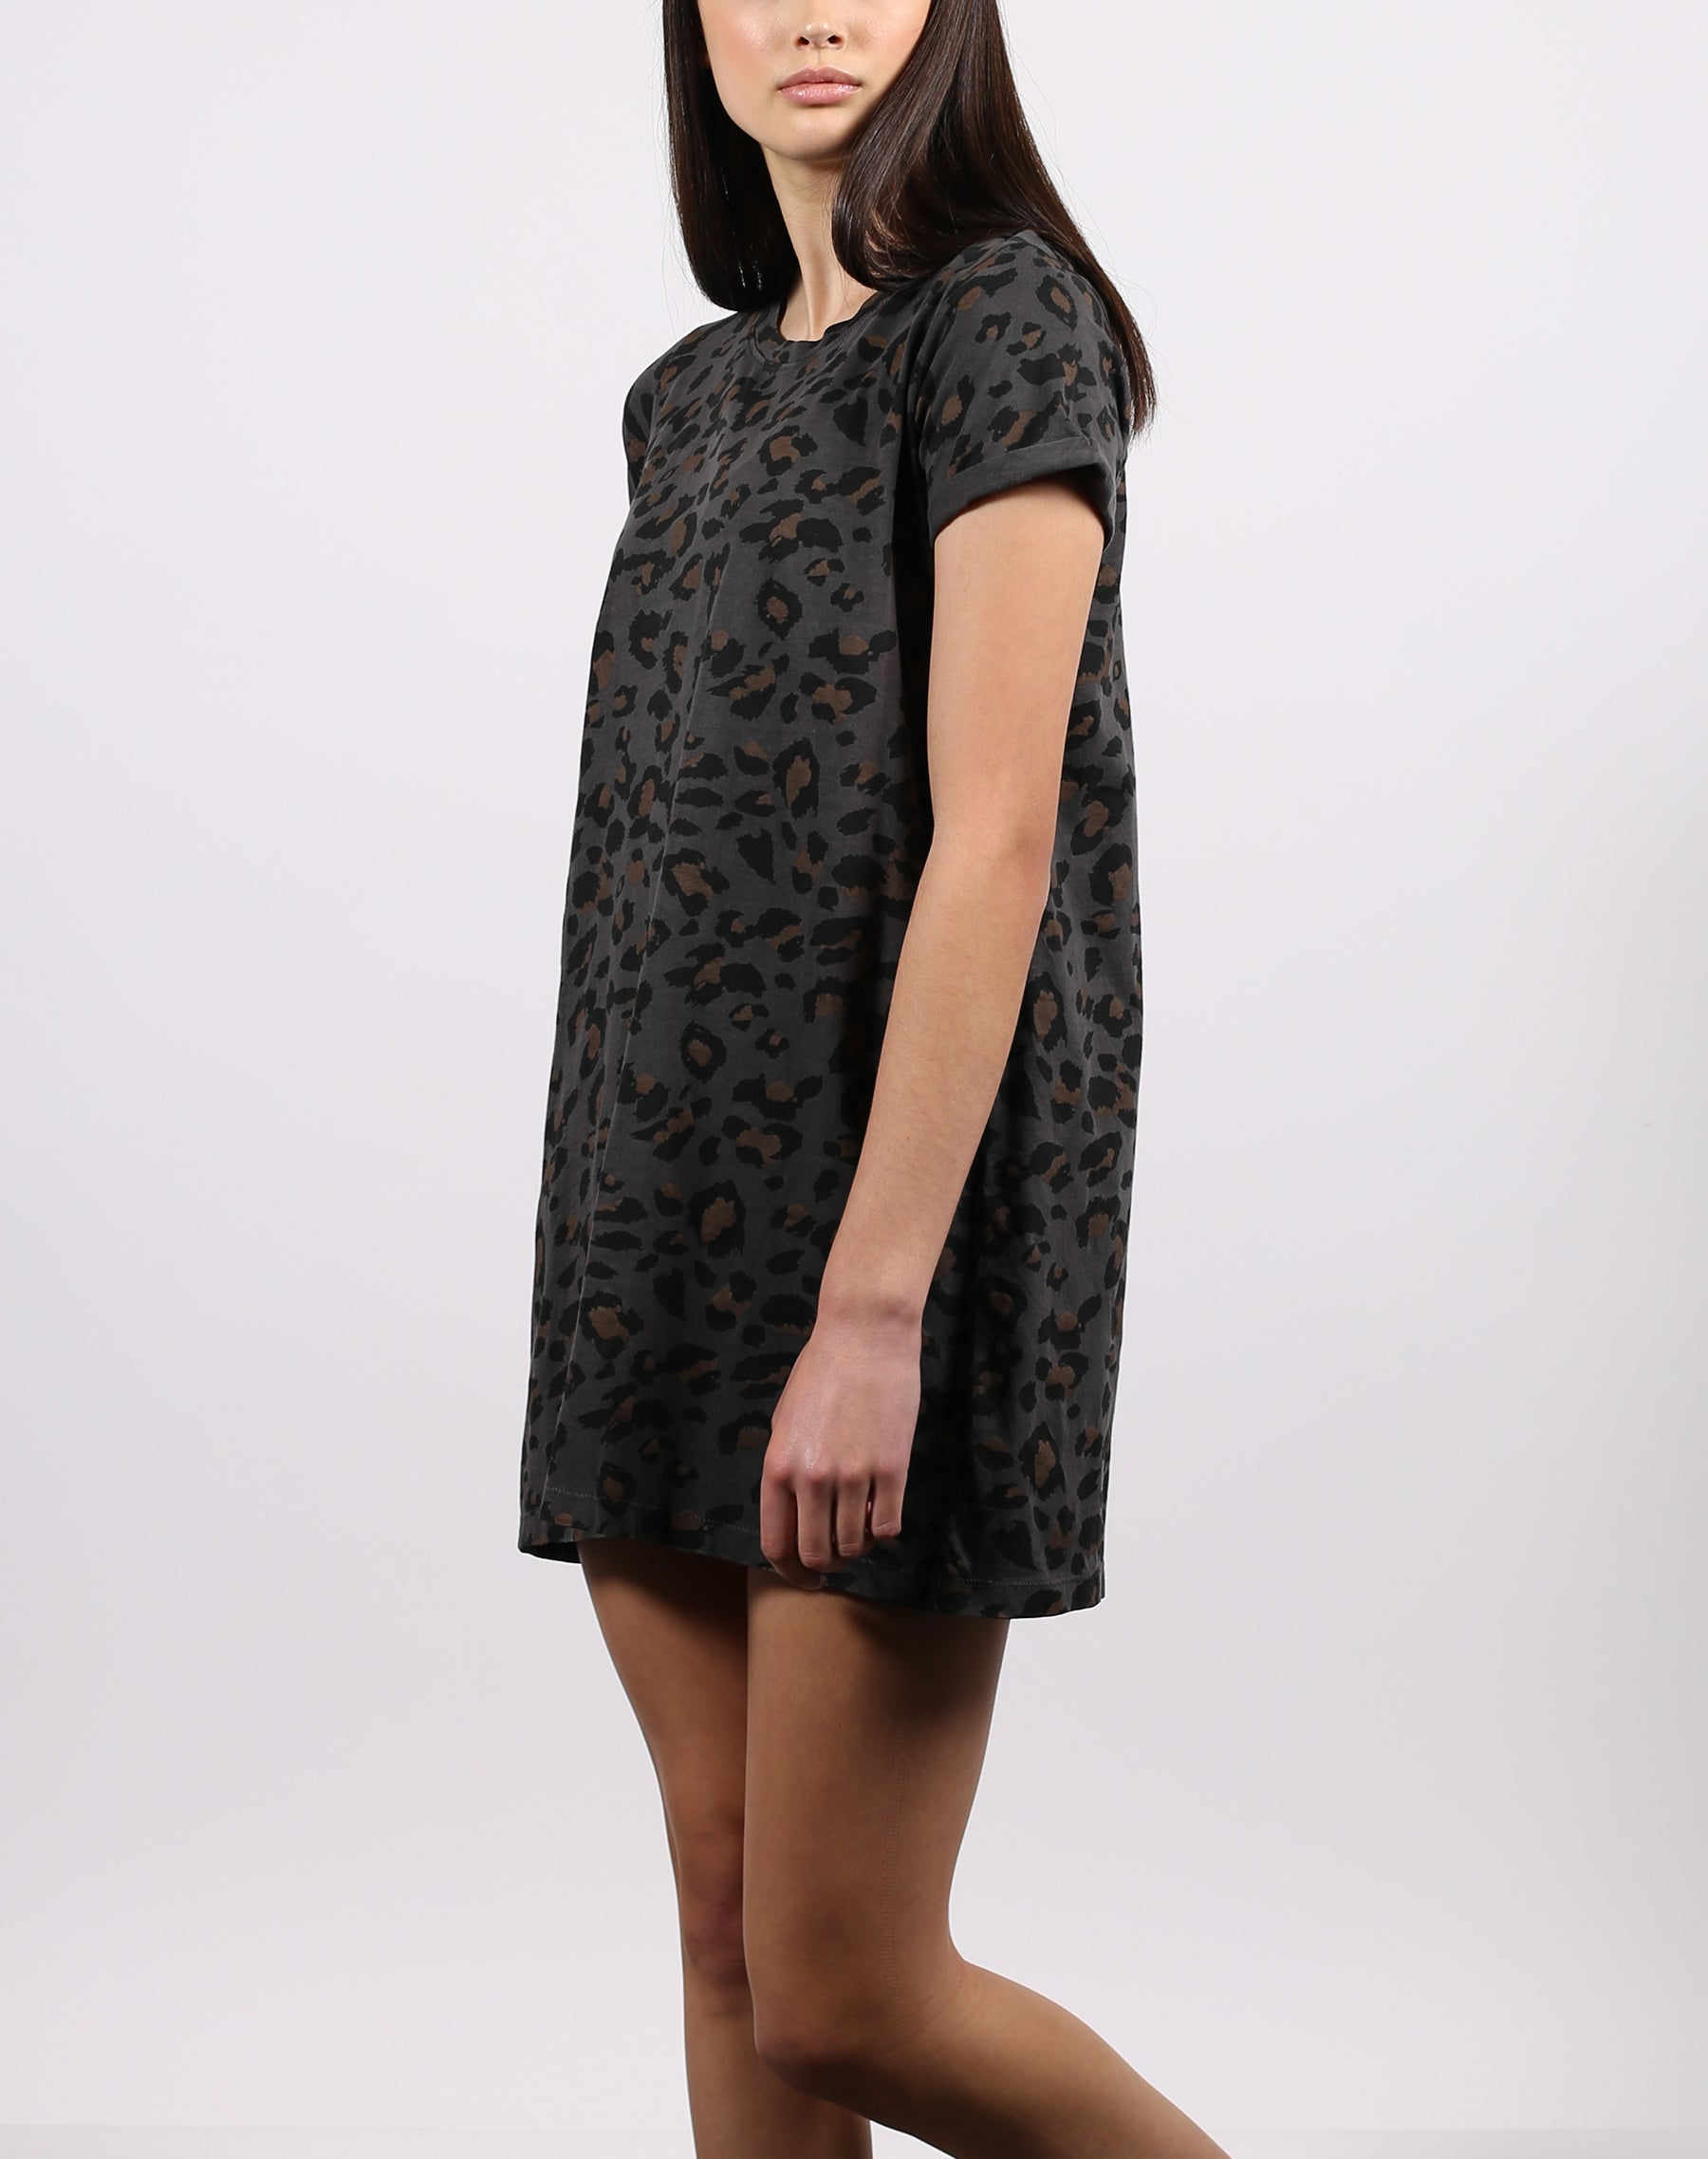 This is the side of the leopard slate t-shirt dress from the 1981 collection by Brunette the Label